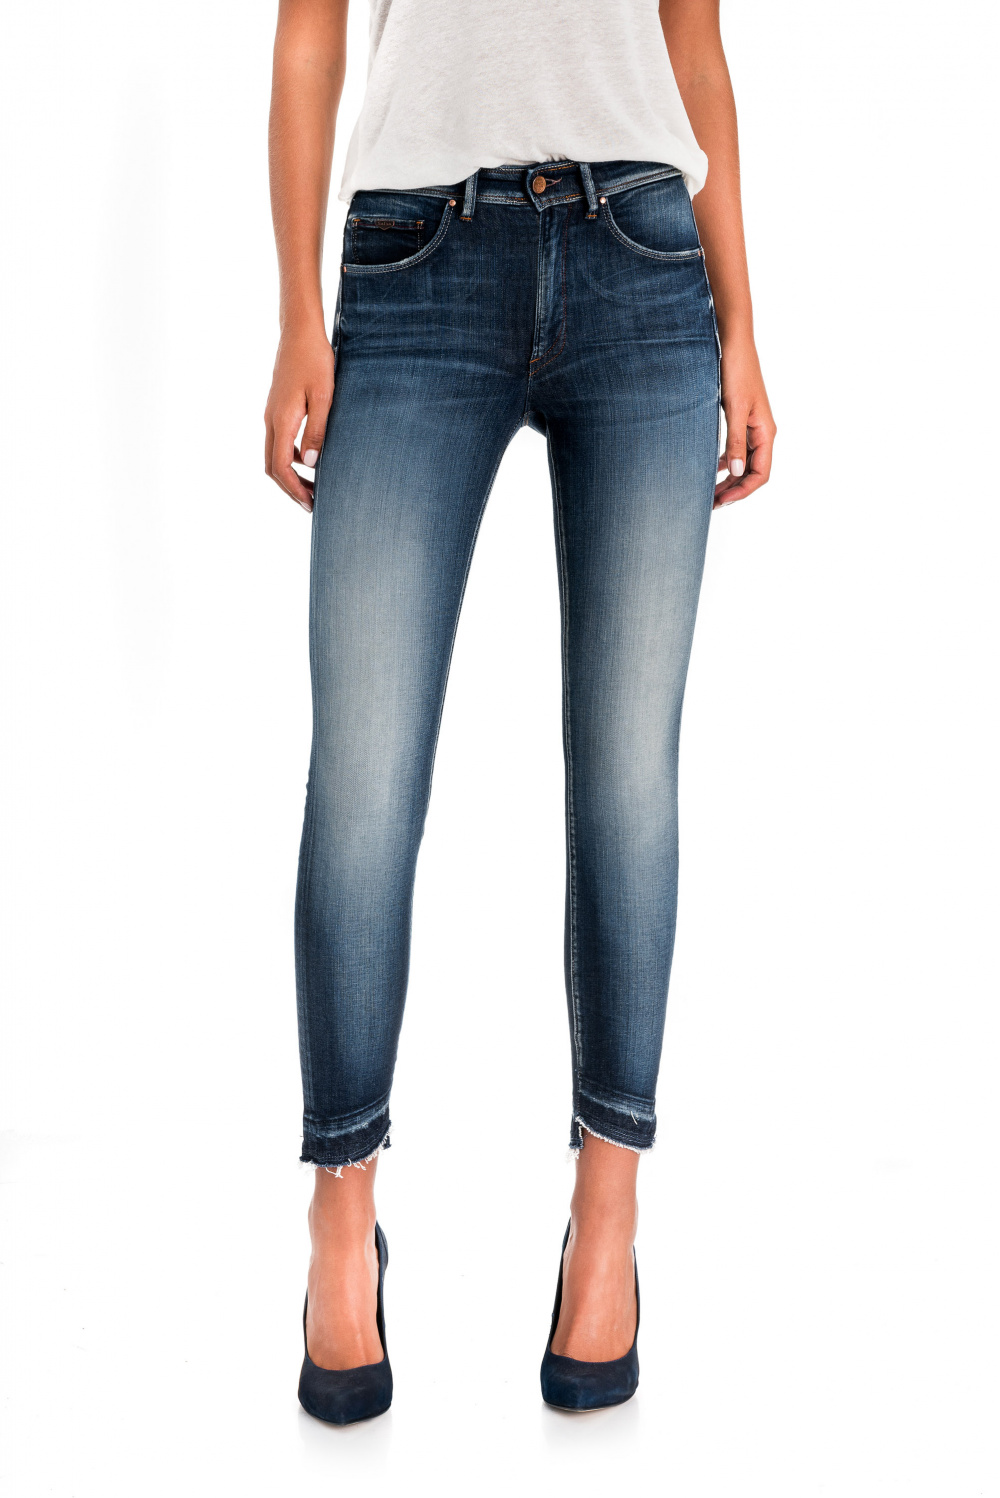 Secret glamour push in capri premium wash jeans